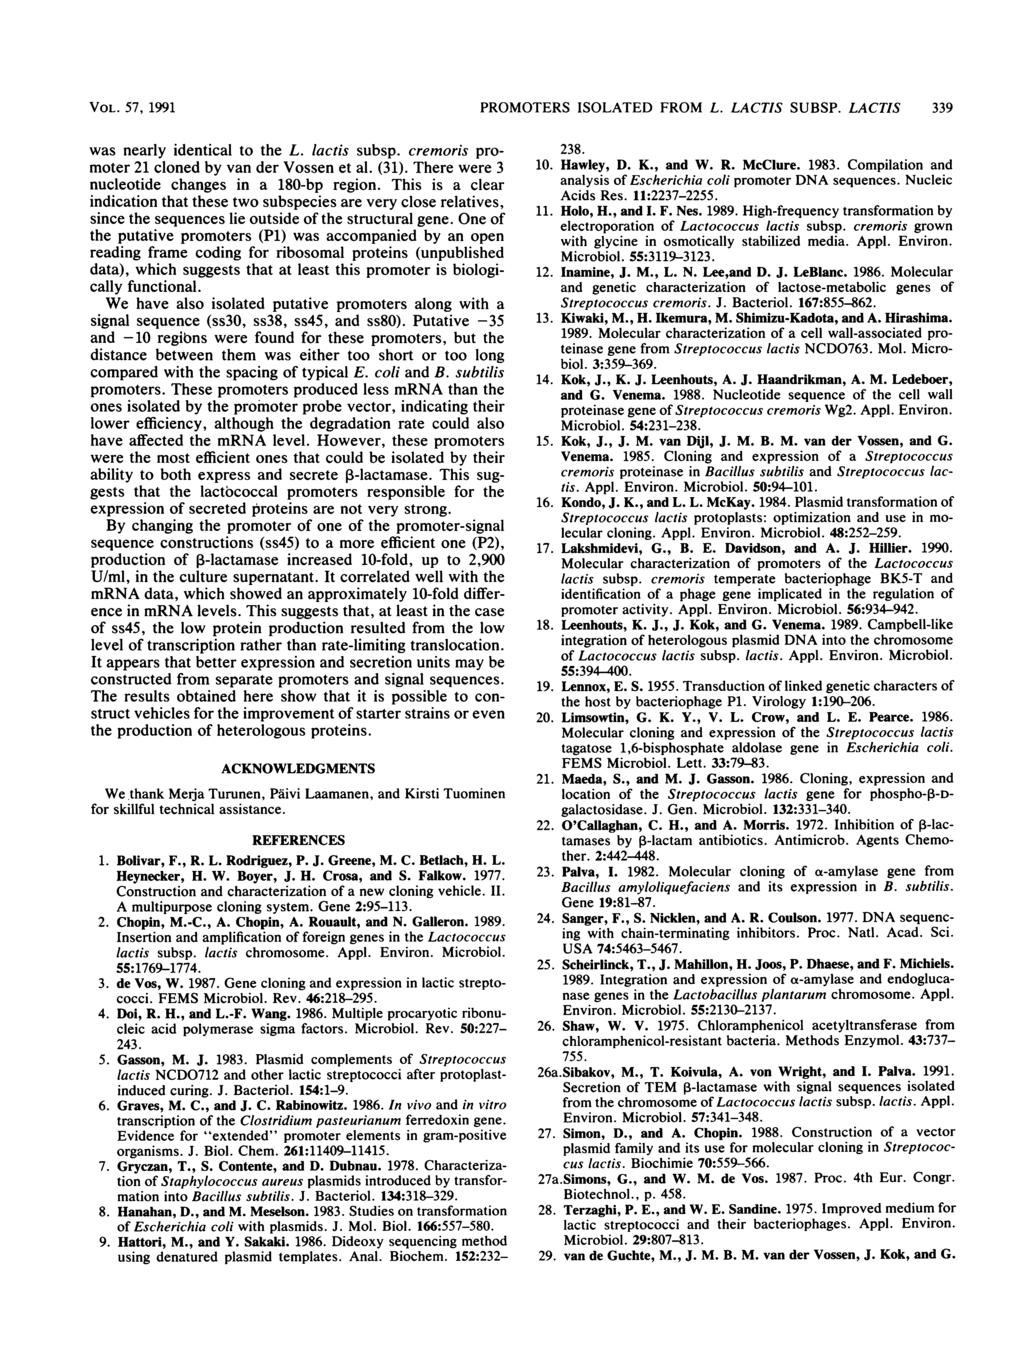 VOL. 57, 1991 PROMOTERS ISOLATED FROM L. LACTIS SUBSP. LACTIS 339 was nearly identical to the L. lactis subsp. cremoris promoter 21 cloned by van der Vossen et al. (31).